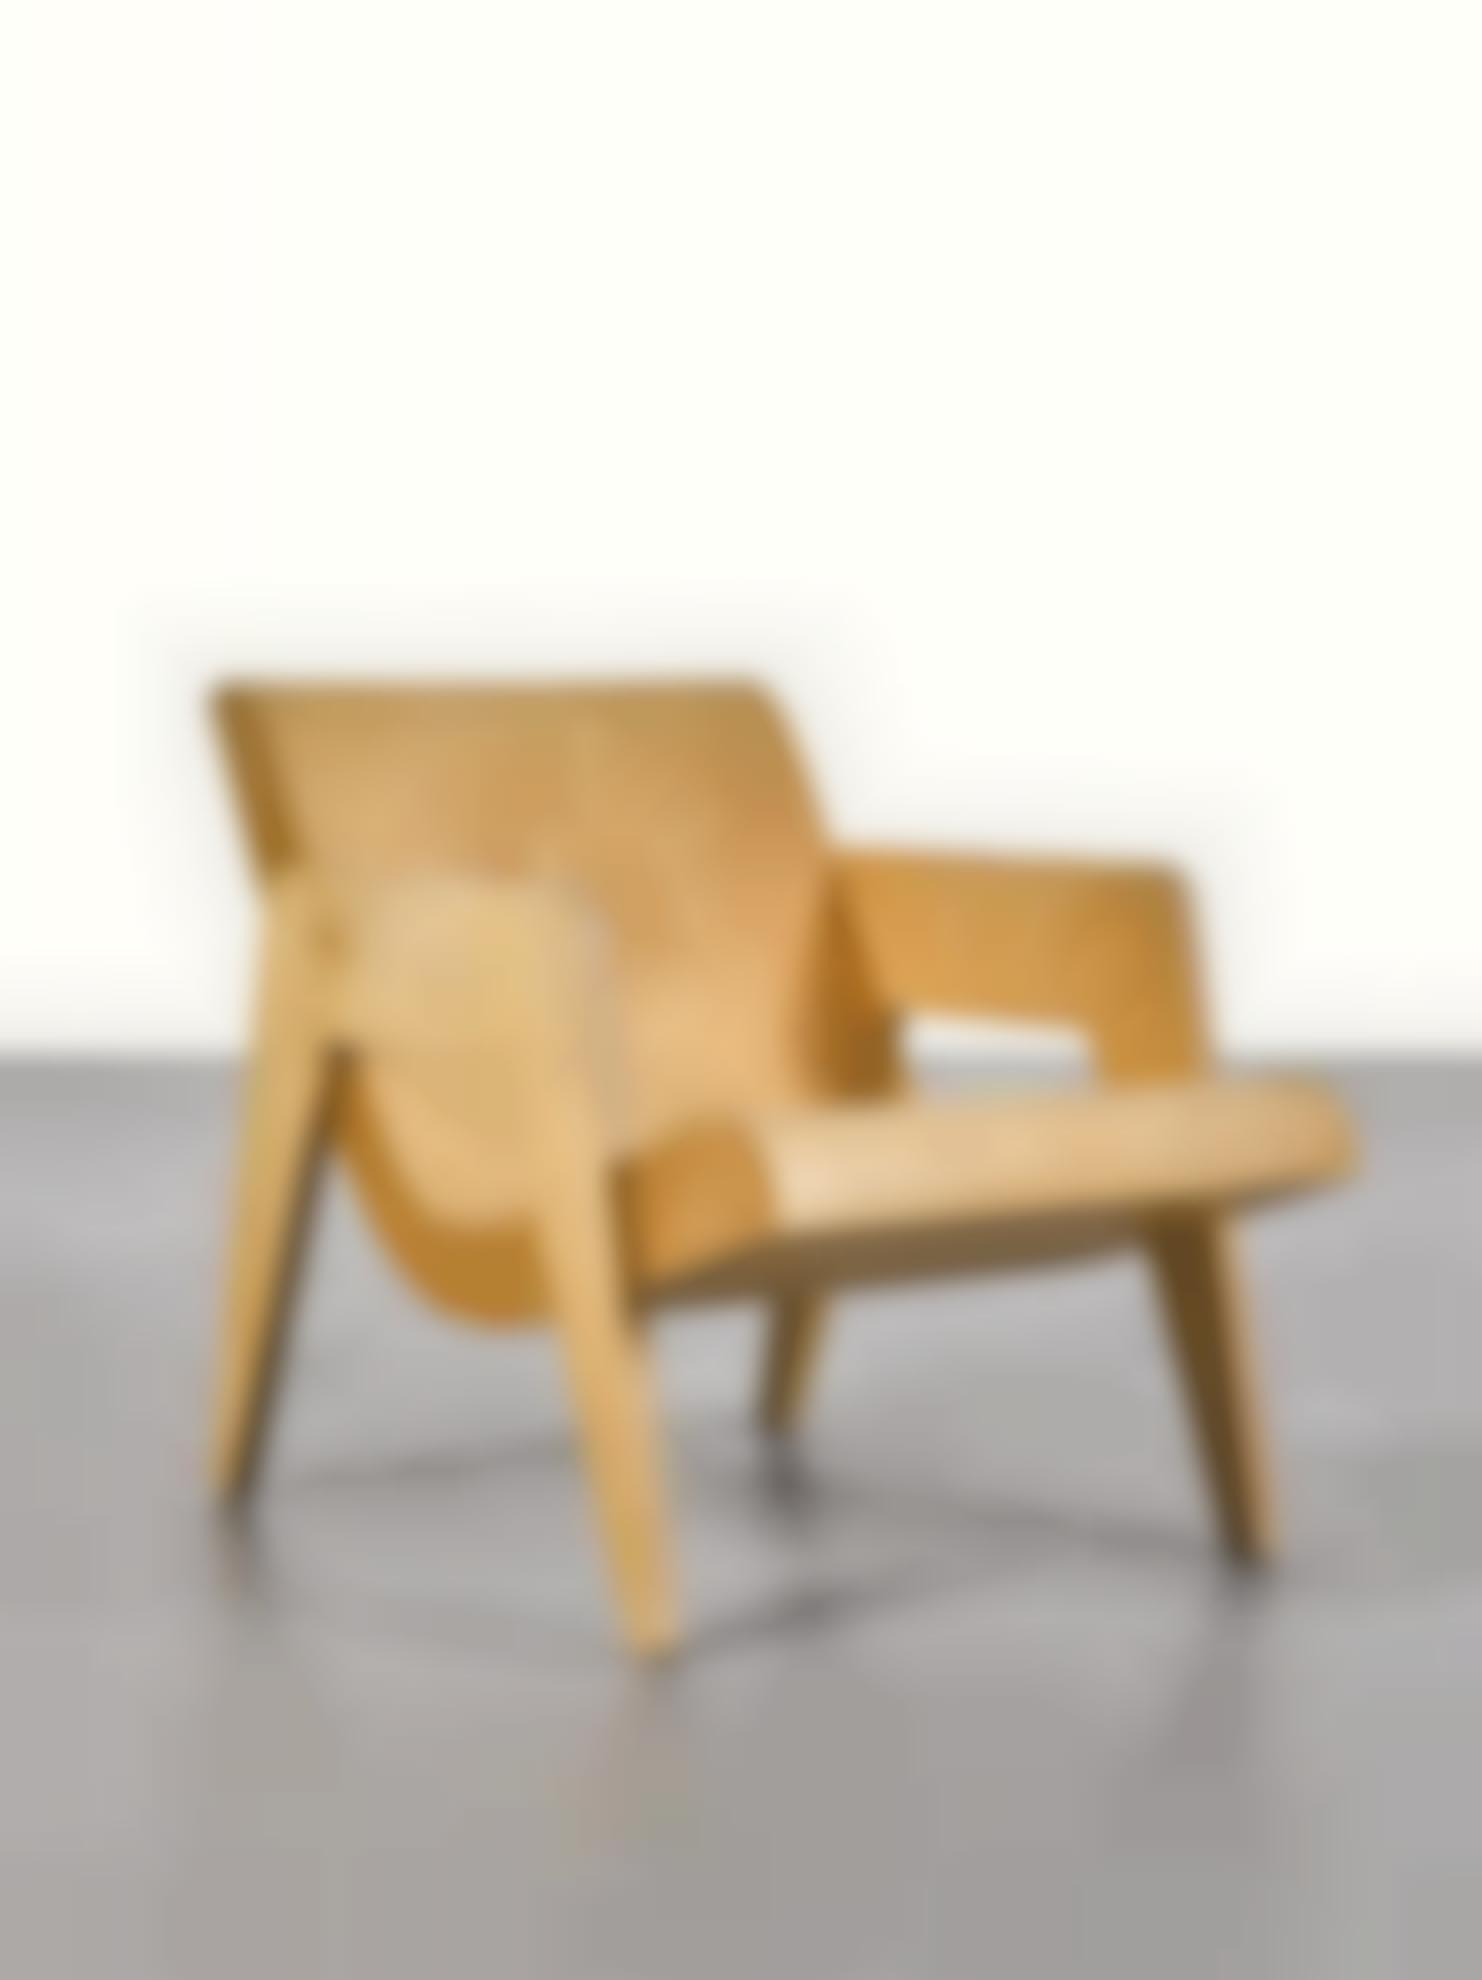 Erno Goldfinger - Armchair, Model No. A58-1995